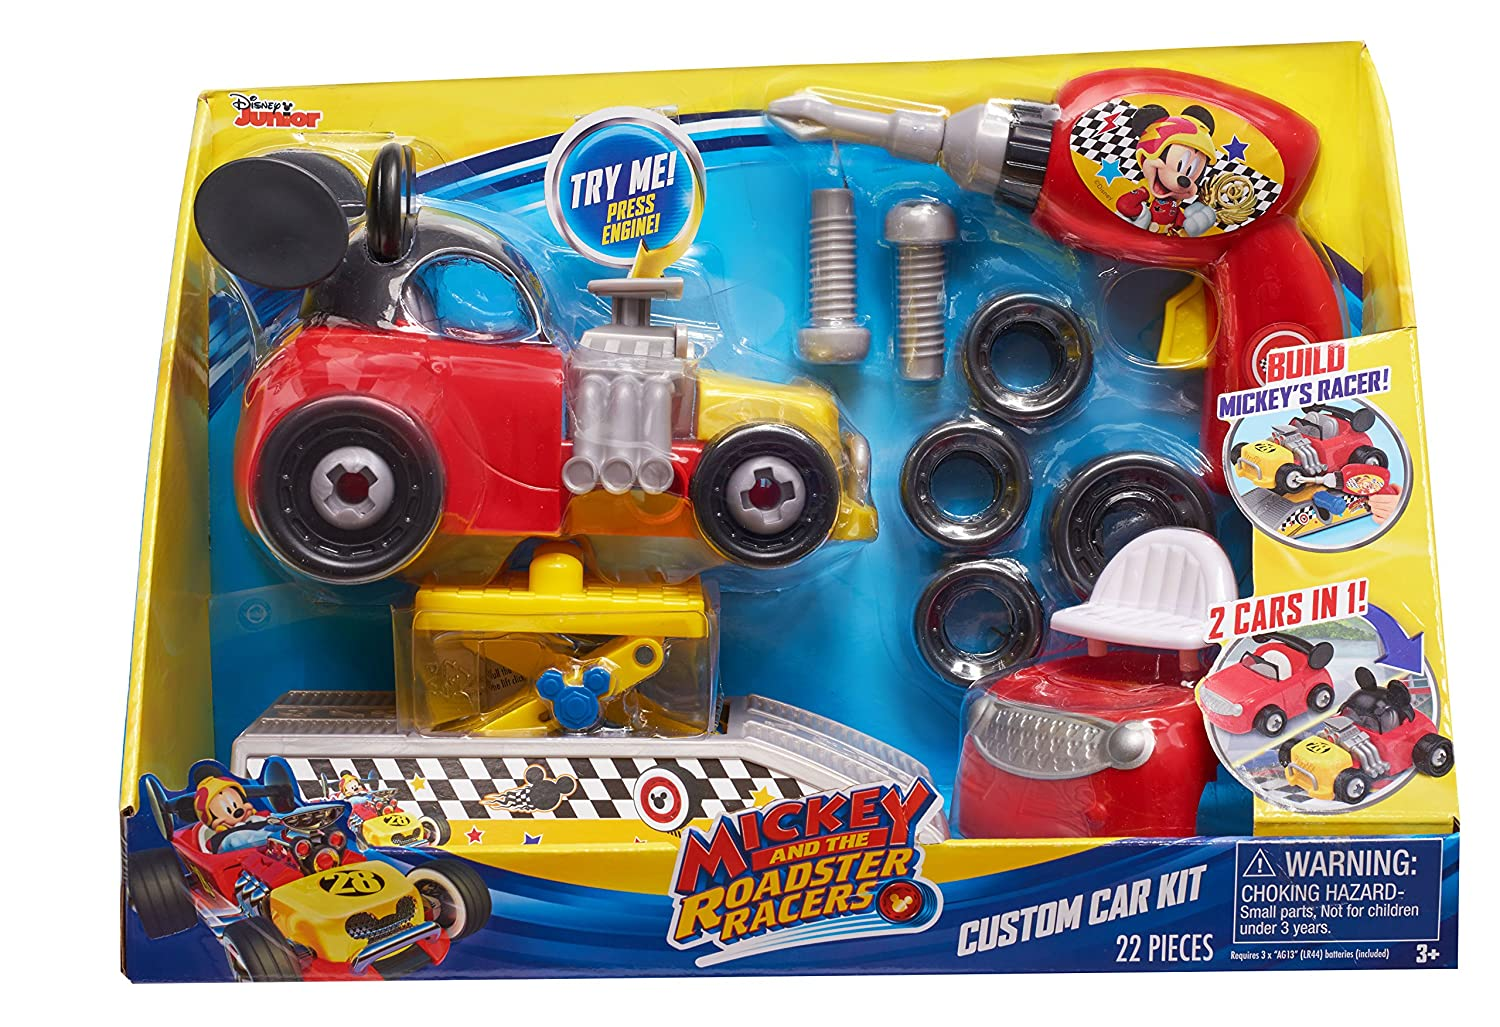 MICKEY ROADSTERS 38266 Racers Custom Car Kit Just Play - Import